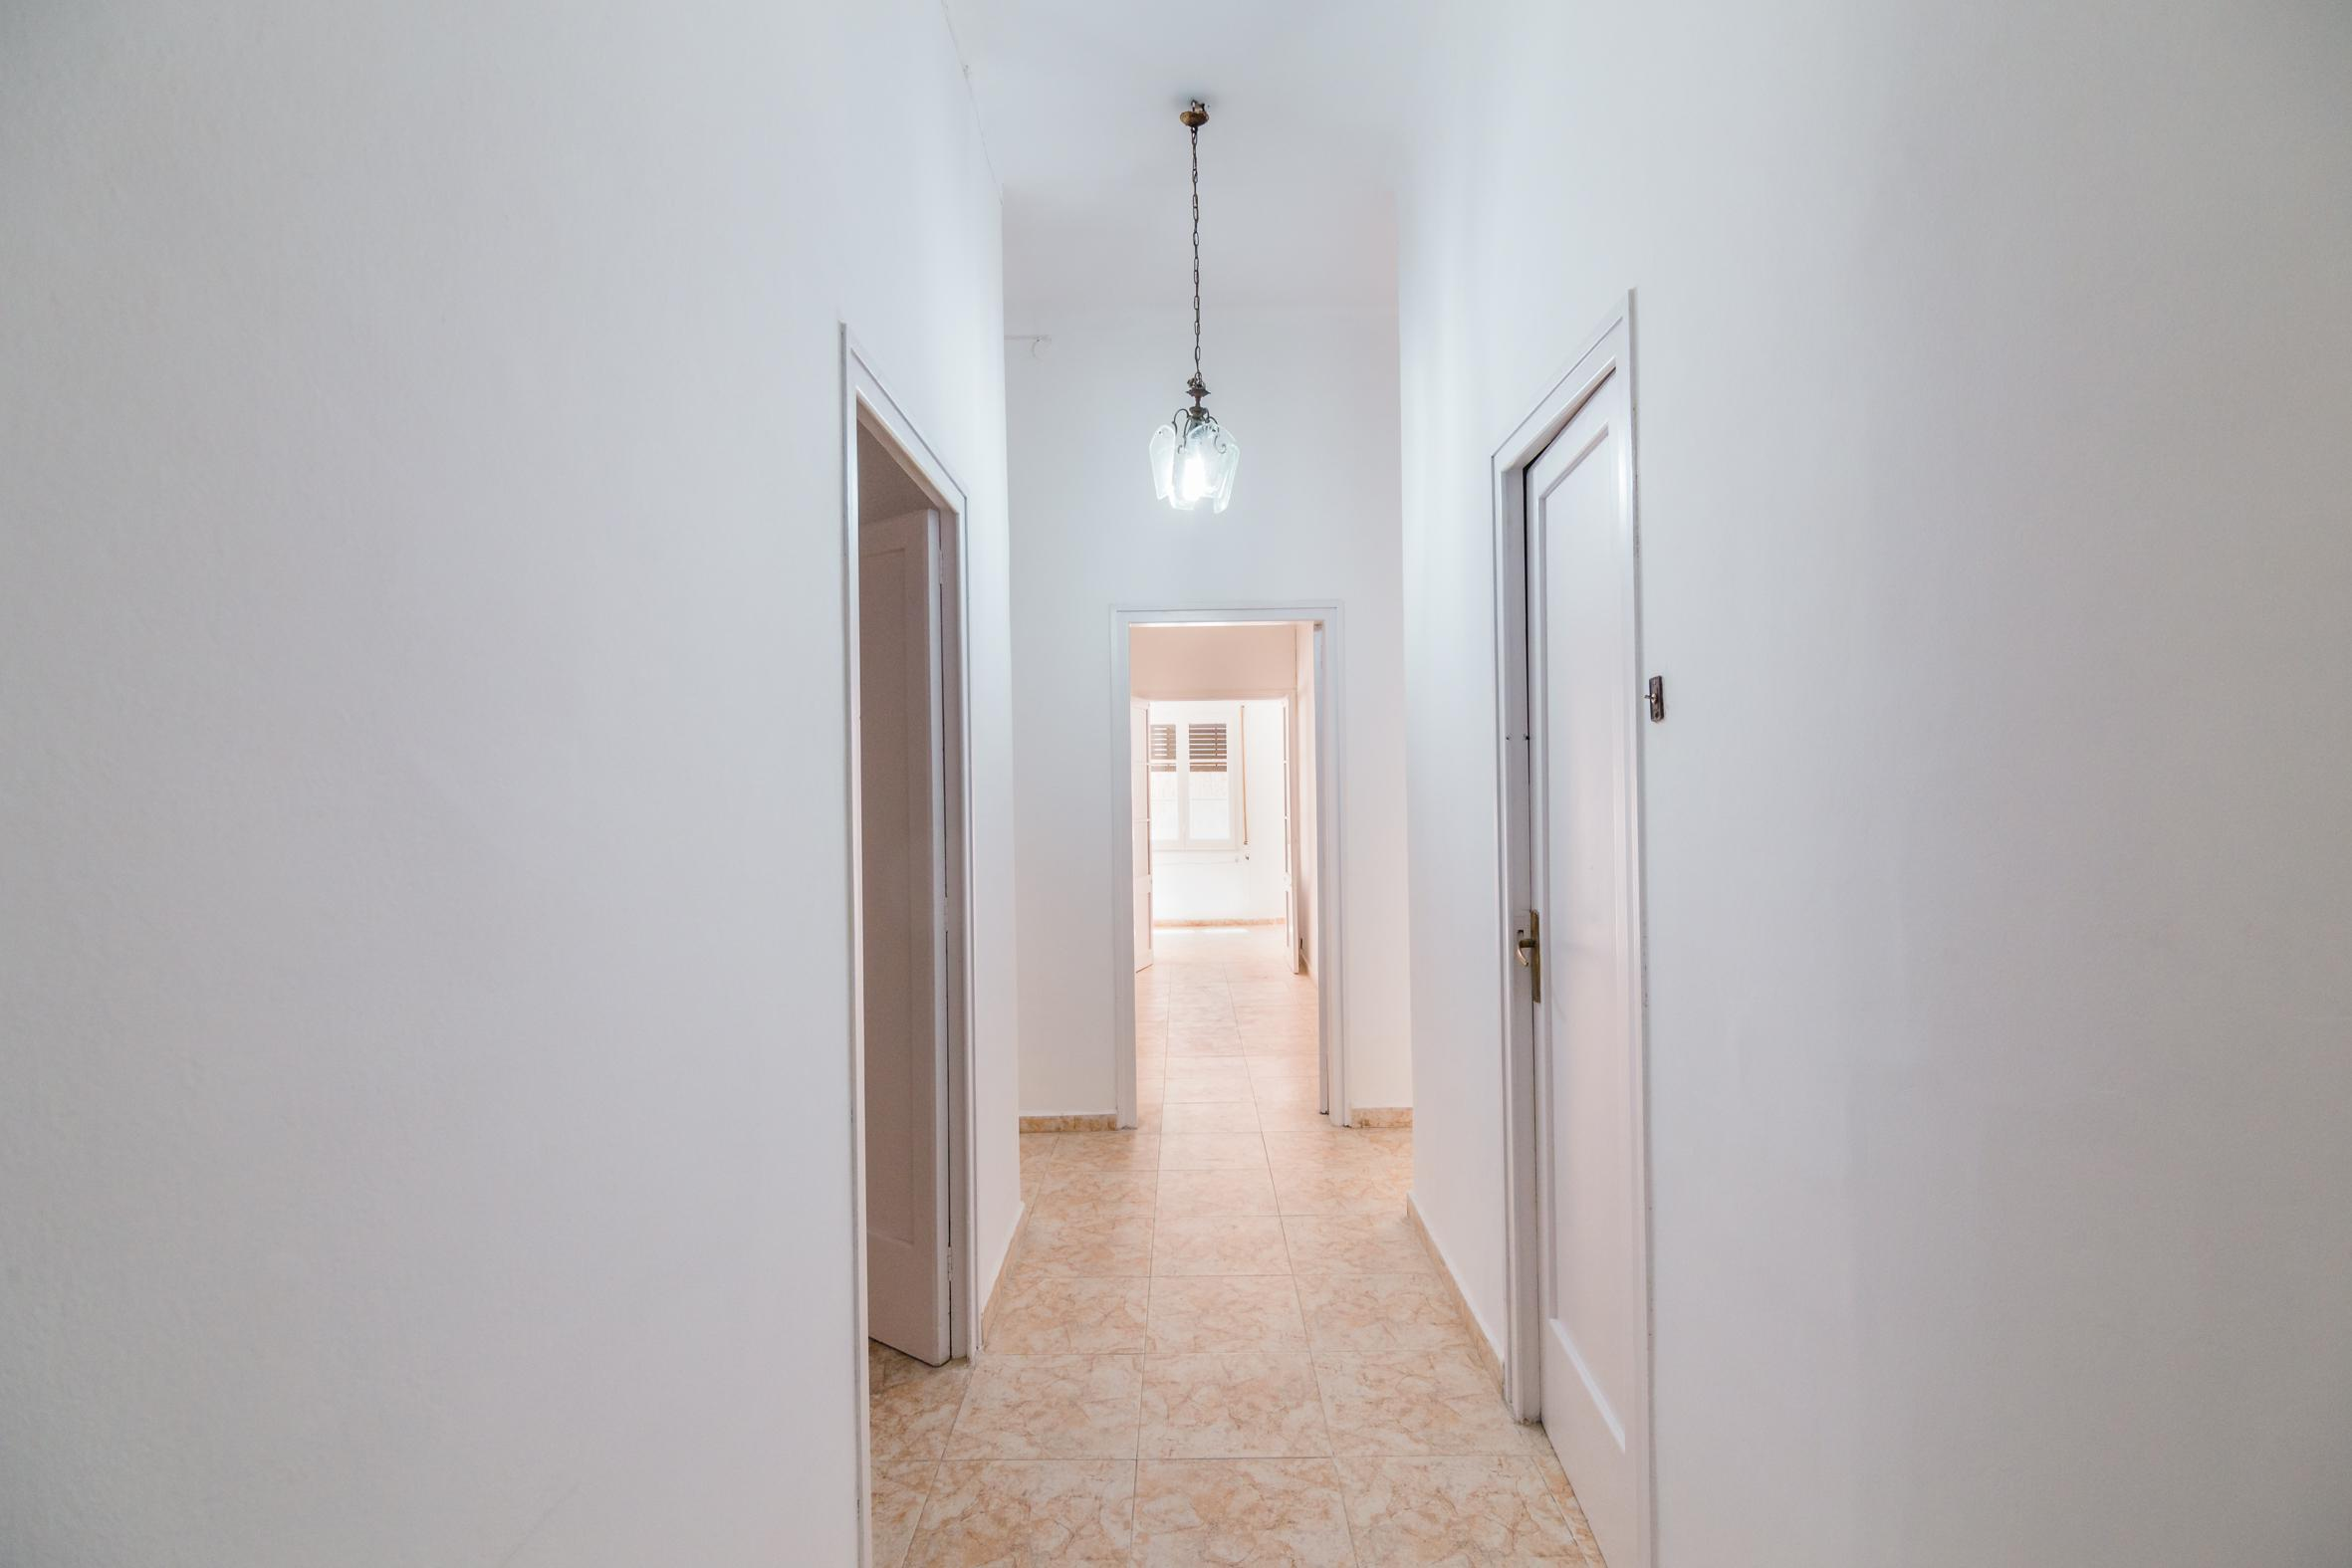 205188 Apartment for sale in Sarrià-Sant Gervasi, St. Gervasi-Bonanova 4